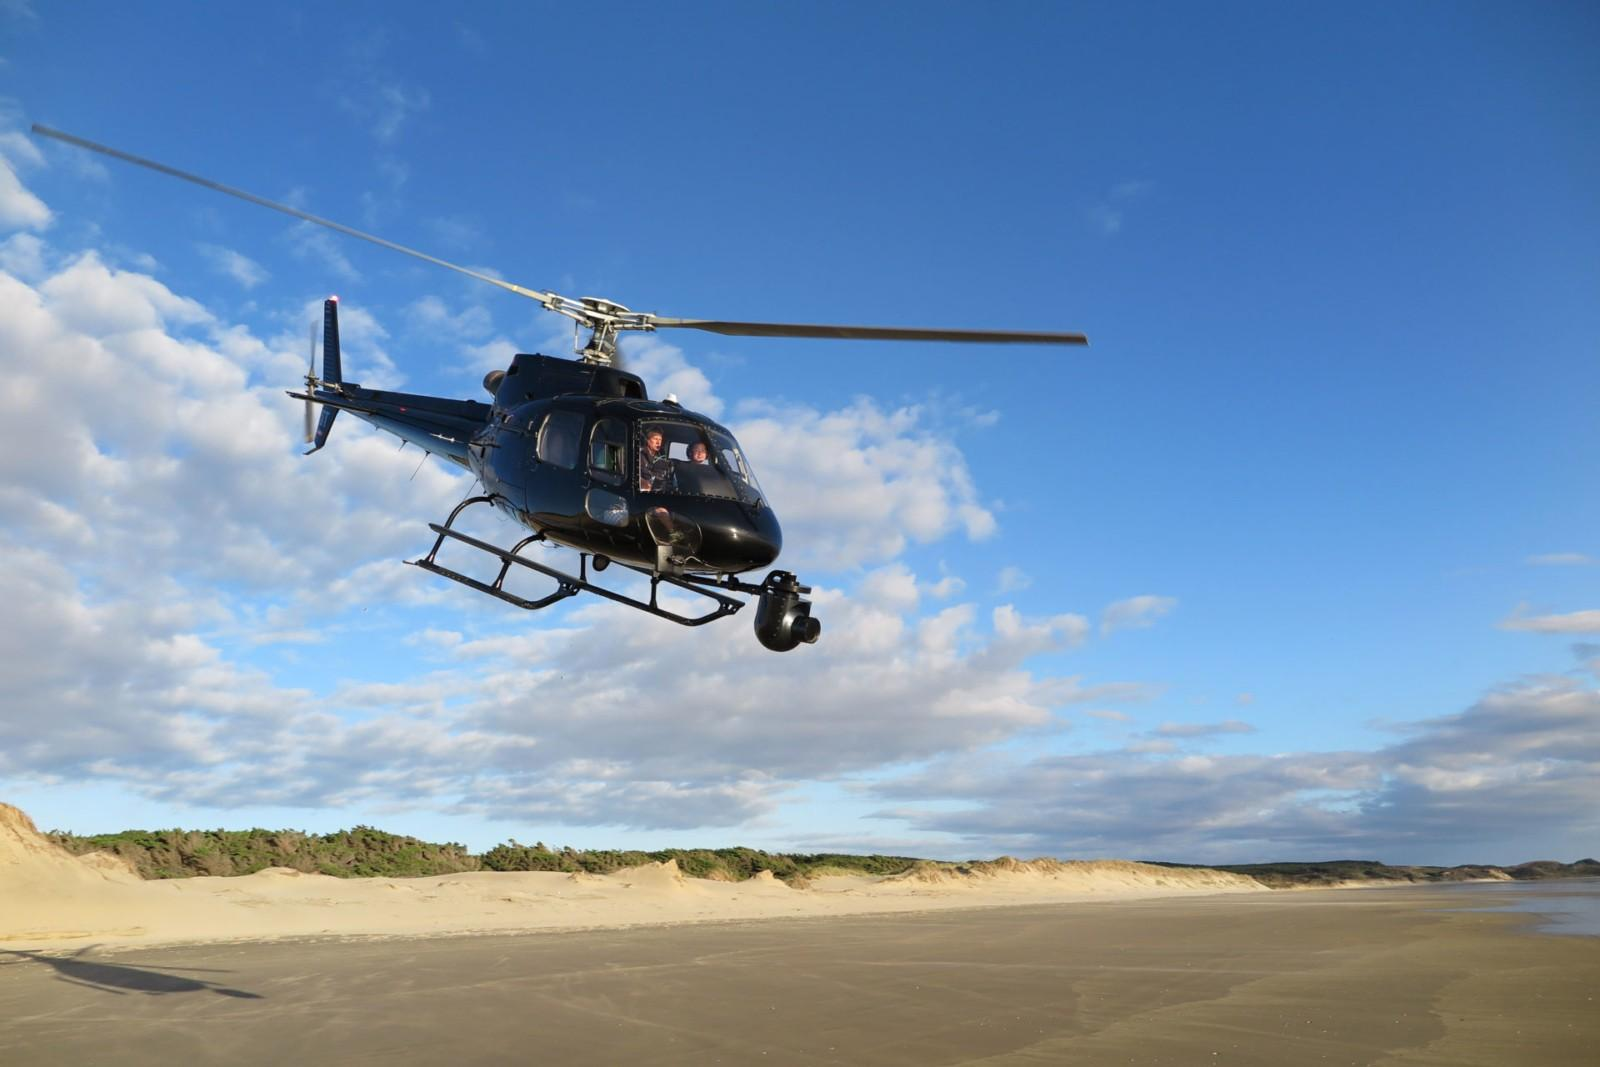 helicopter flying over sand dunes with gyroscopic camera mounted on nose